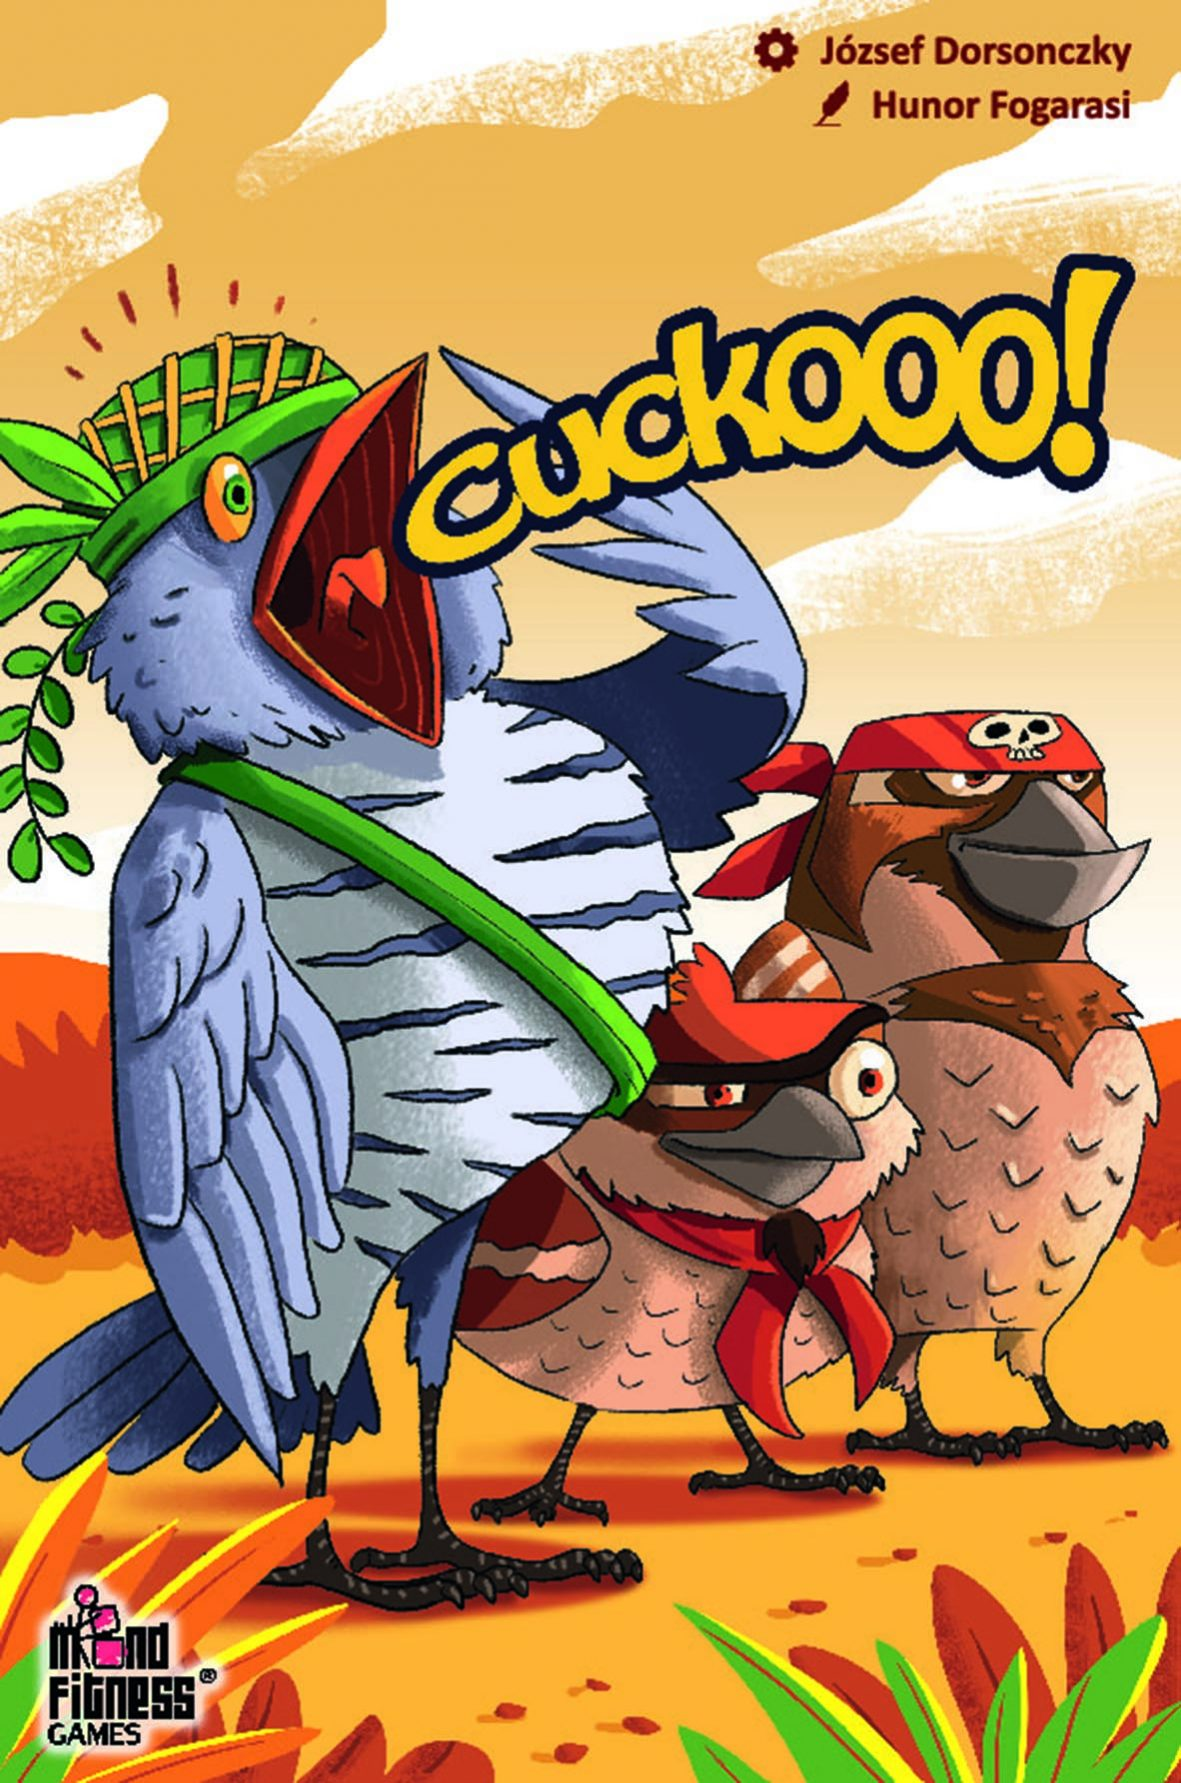 Cuckooo! -  Mind Fitness Games